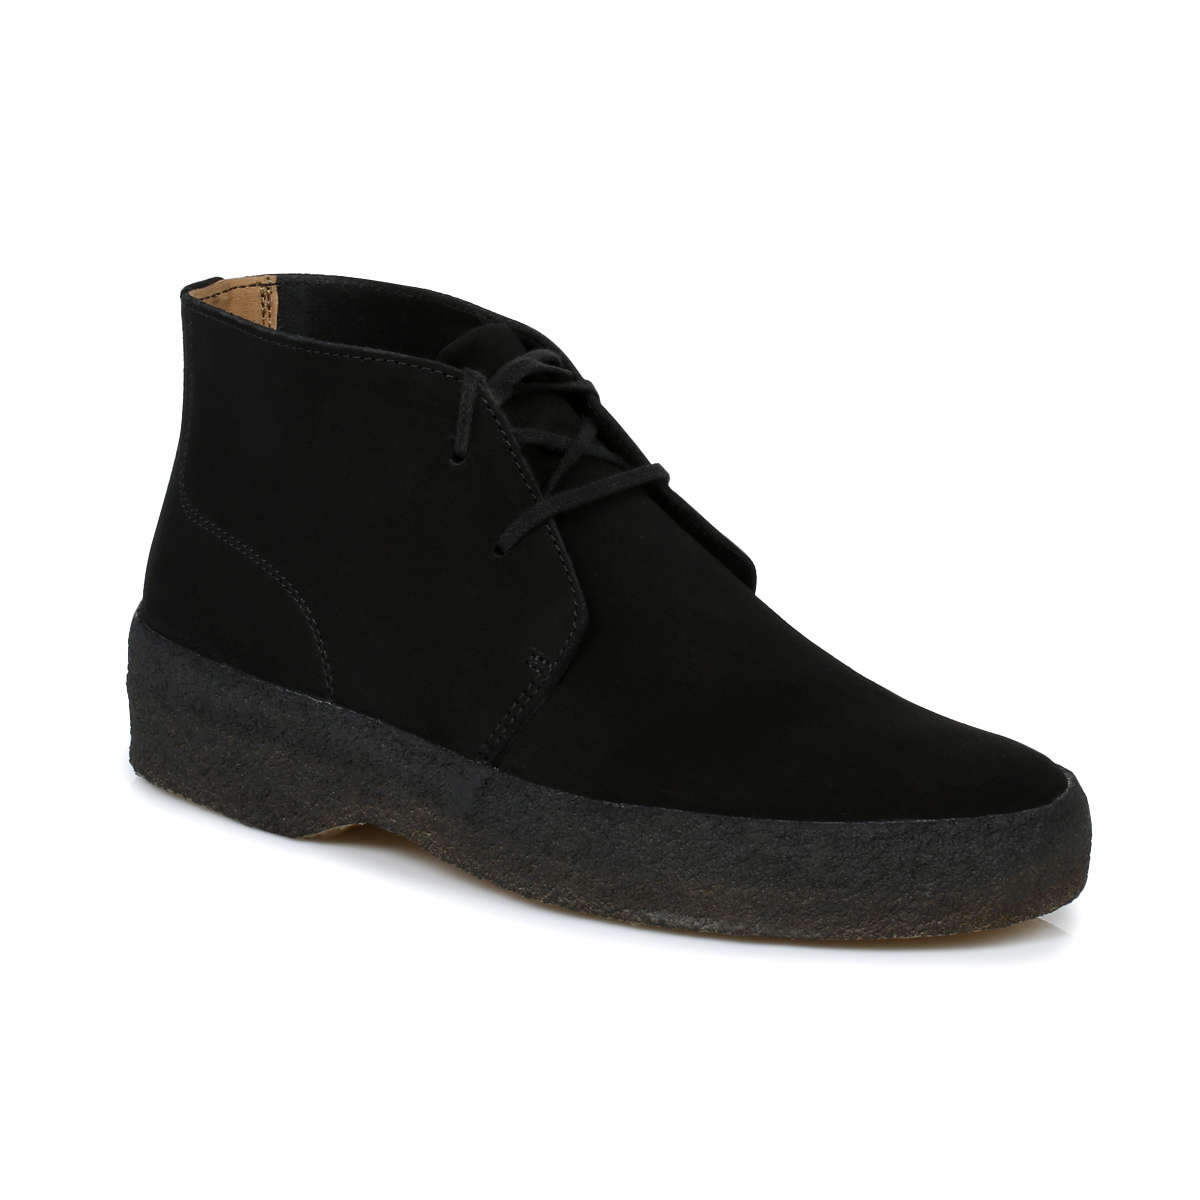 Clarks Black Desert Earl Mens Boots Sizes 8 11 Ebay